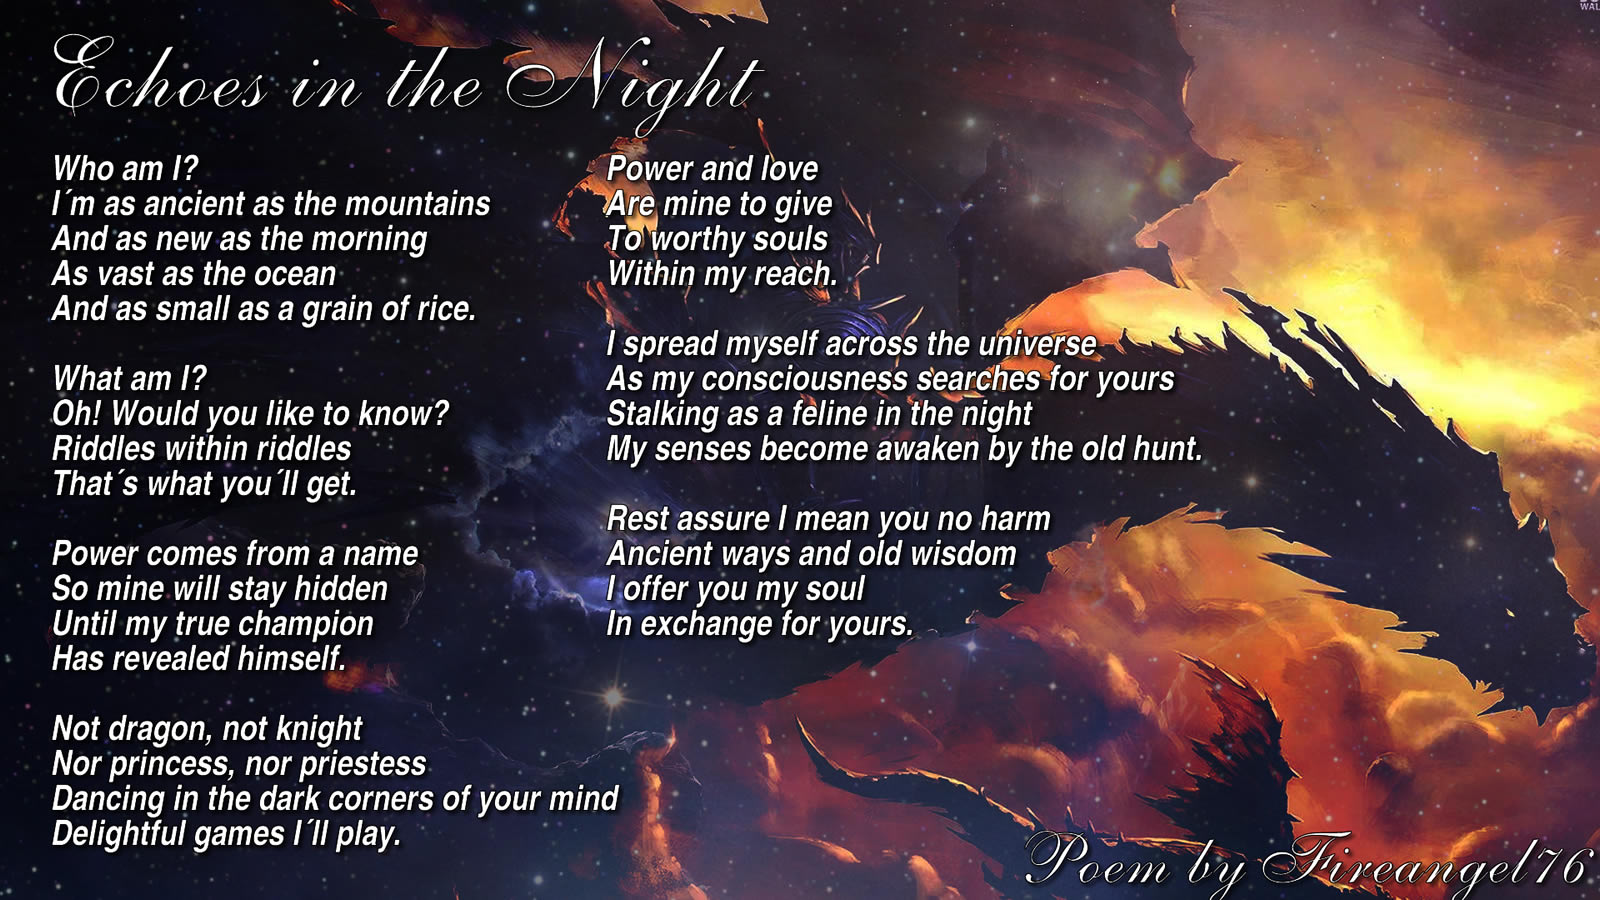 echoes_in_the_night